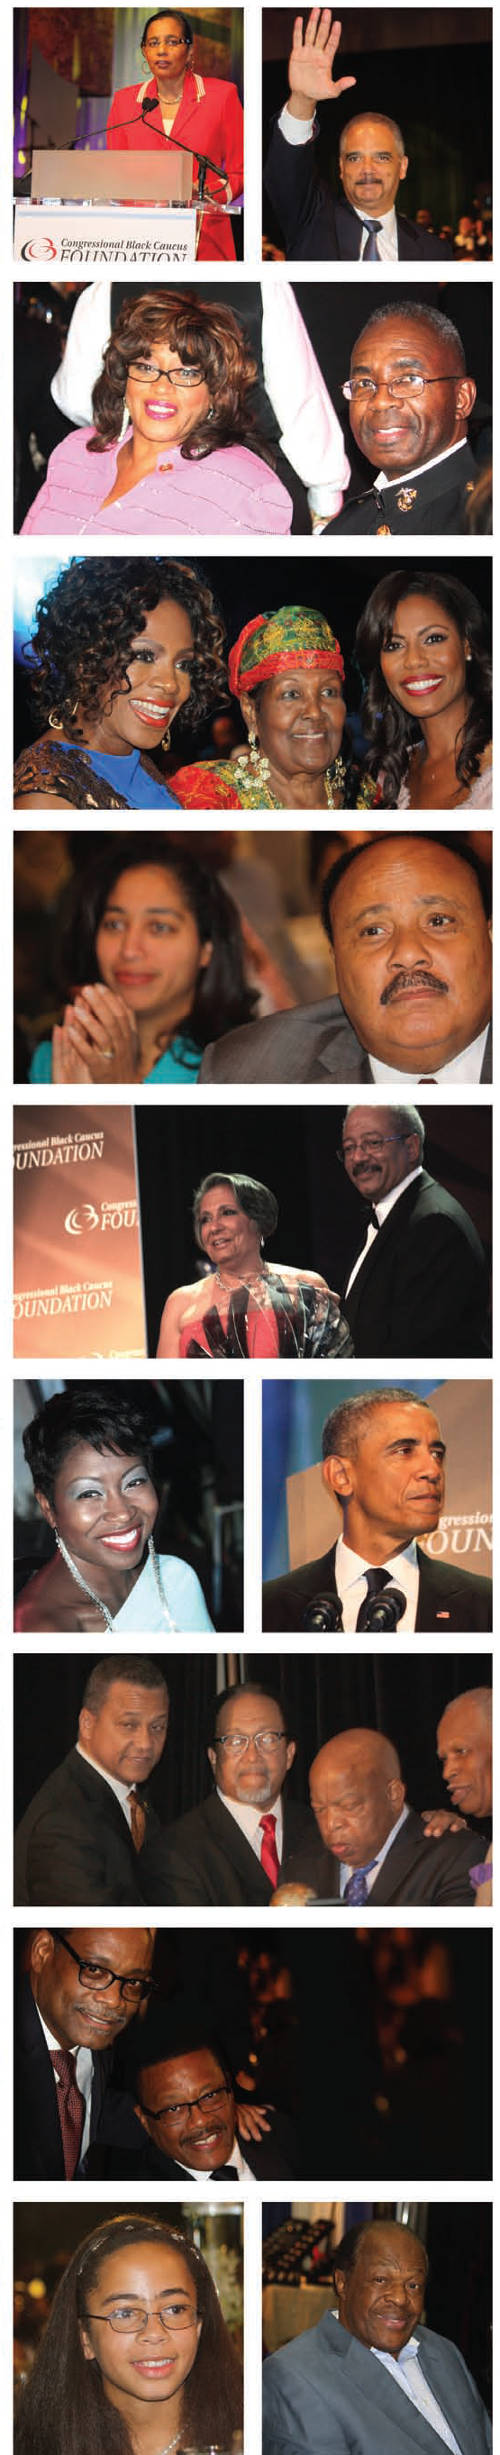 congressional-black-caucus-foundation-44th-annual-it-starts-with-you-3